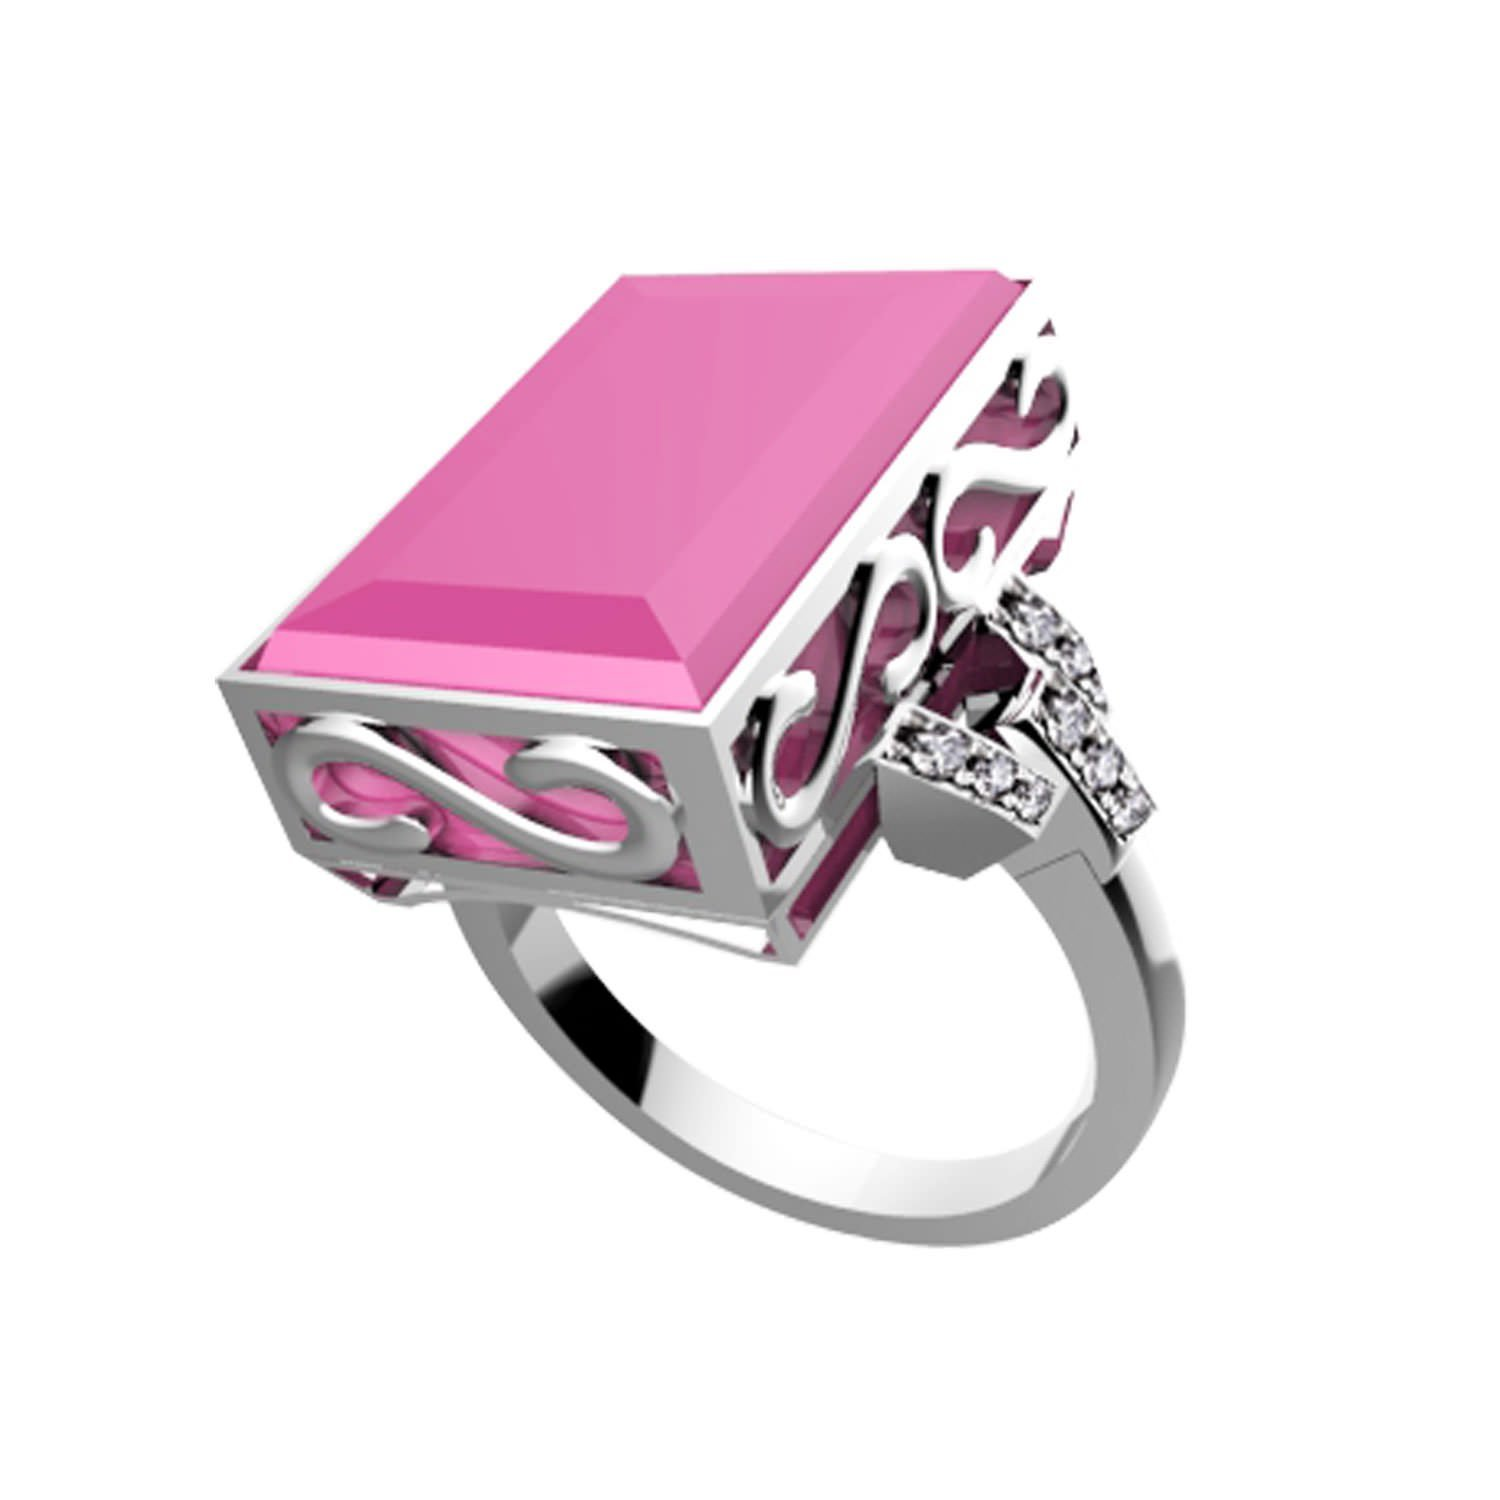 7 Ares Smart Ring - Silver & Pink - Buy Smart Rings